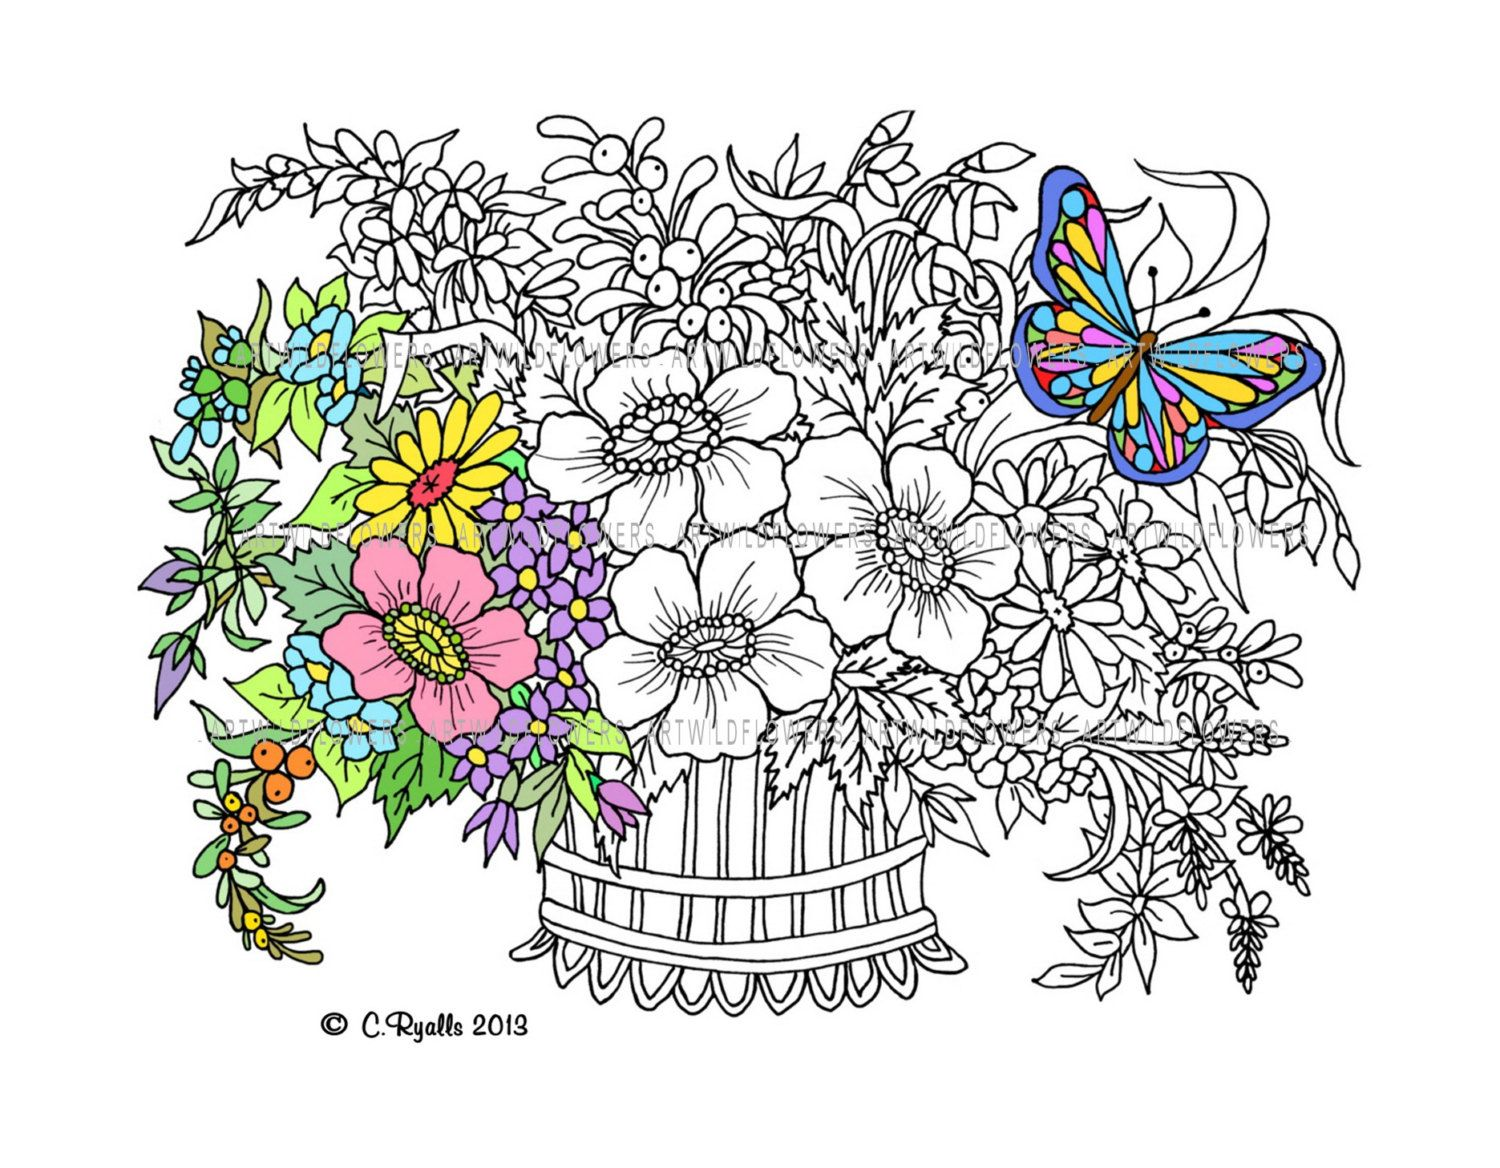 Butterfly Garden Coloring Pages Garden Coloring Pages Colorful Garden Coloring Pages